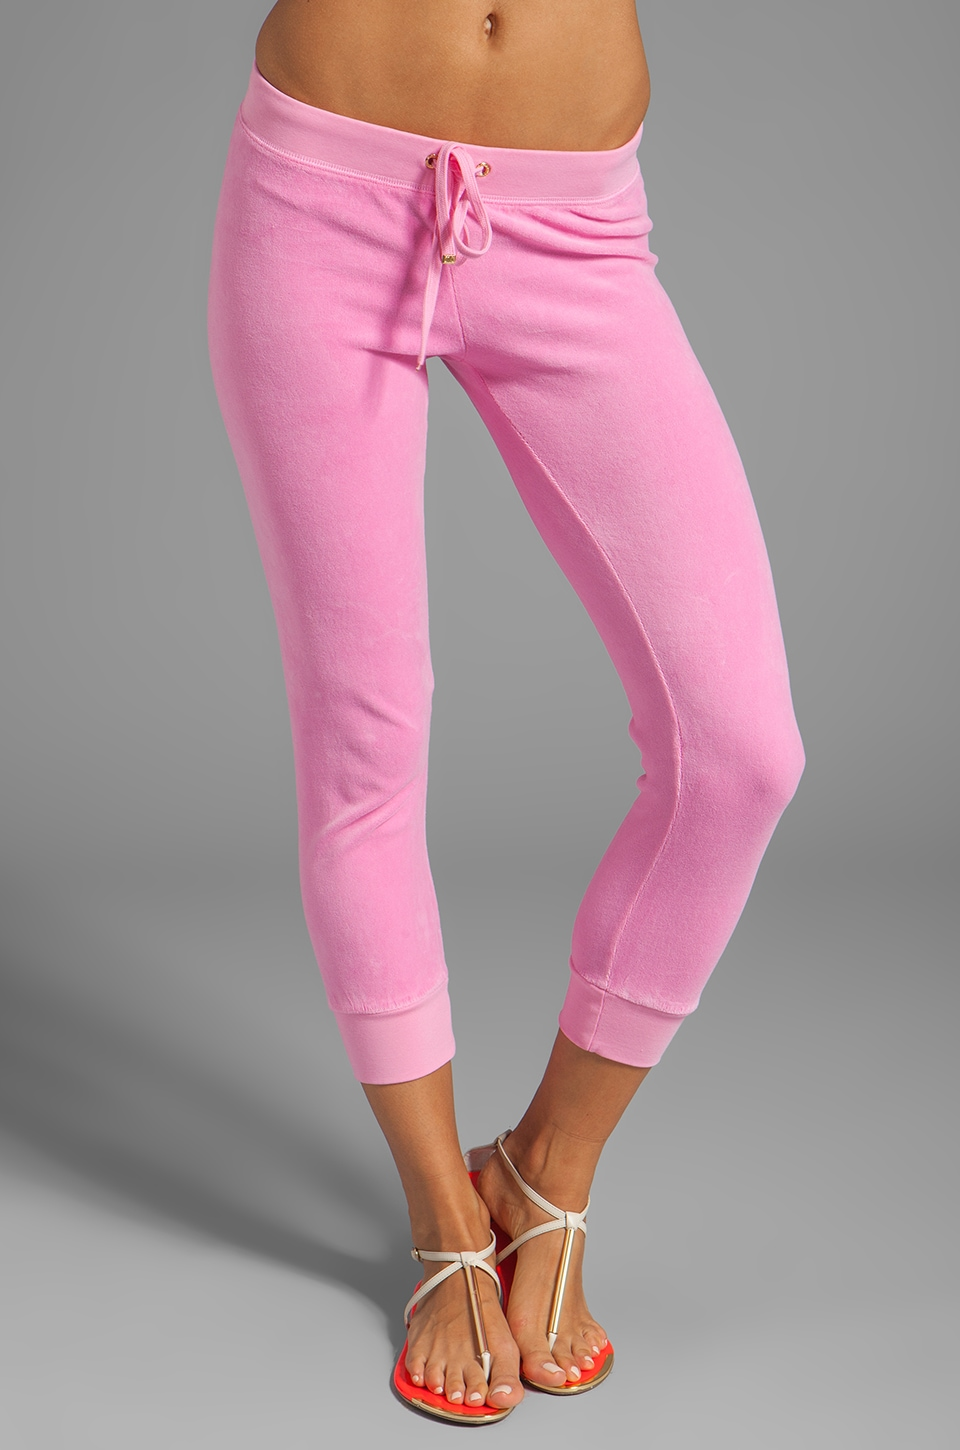 Juicy Couture Velour Capri Sweatpant in Synthetic Pink